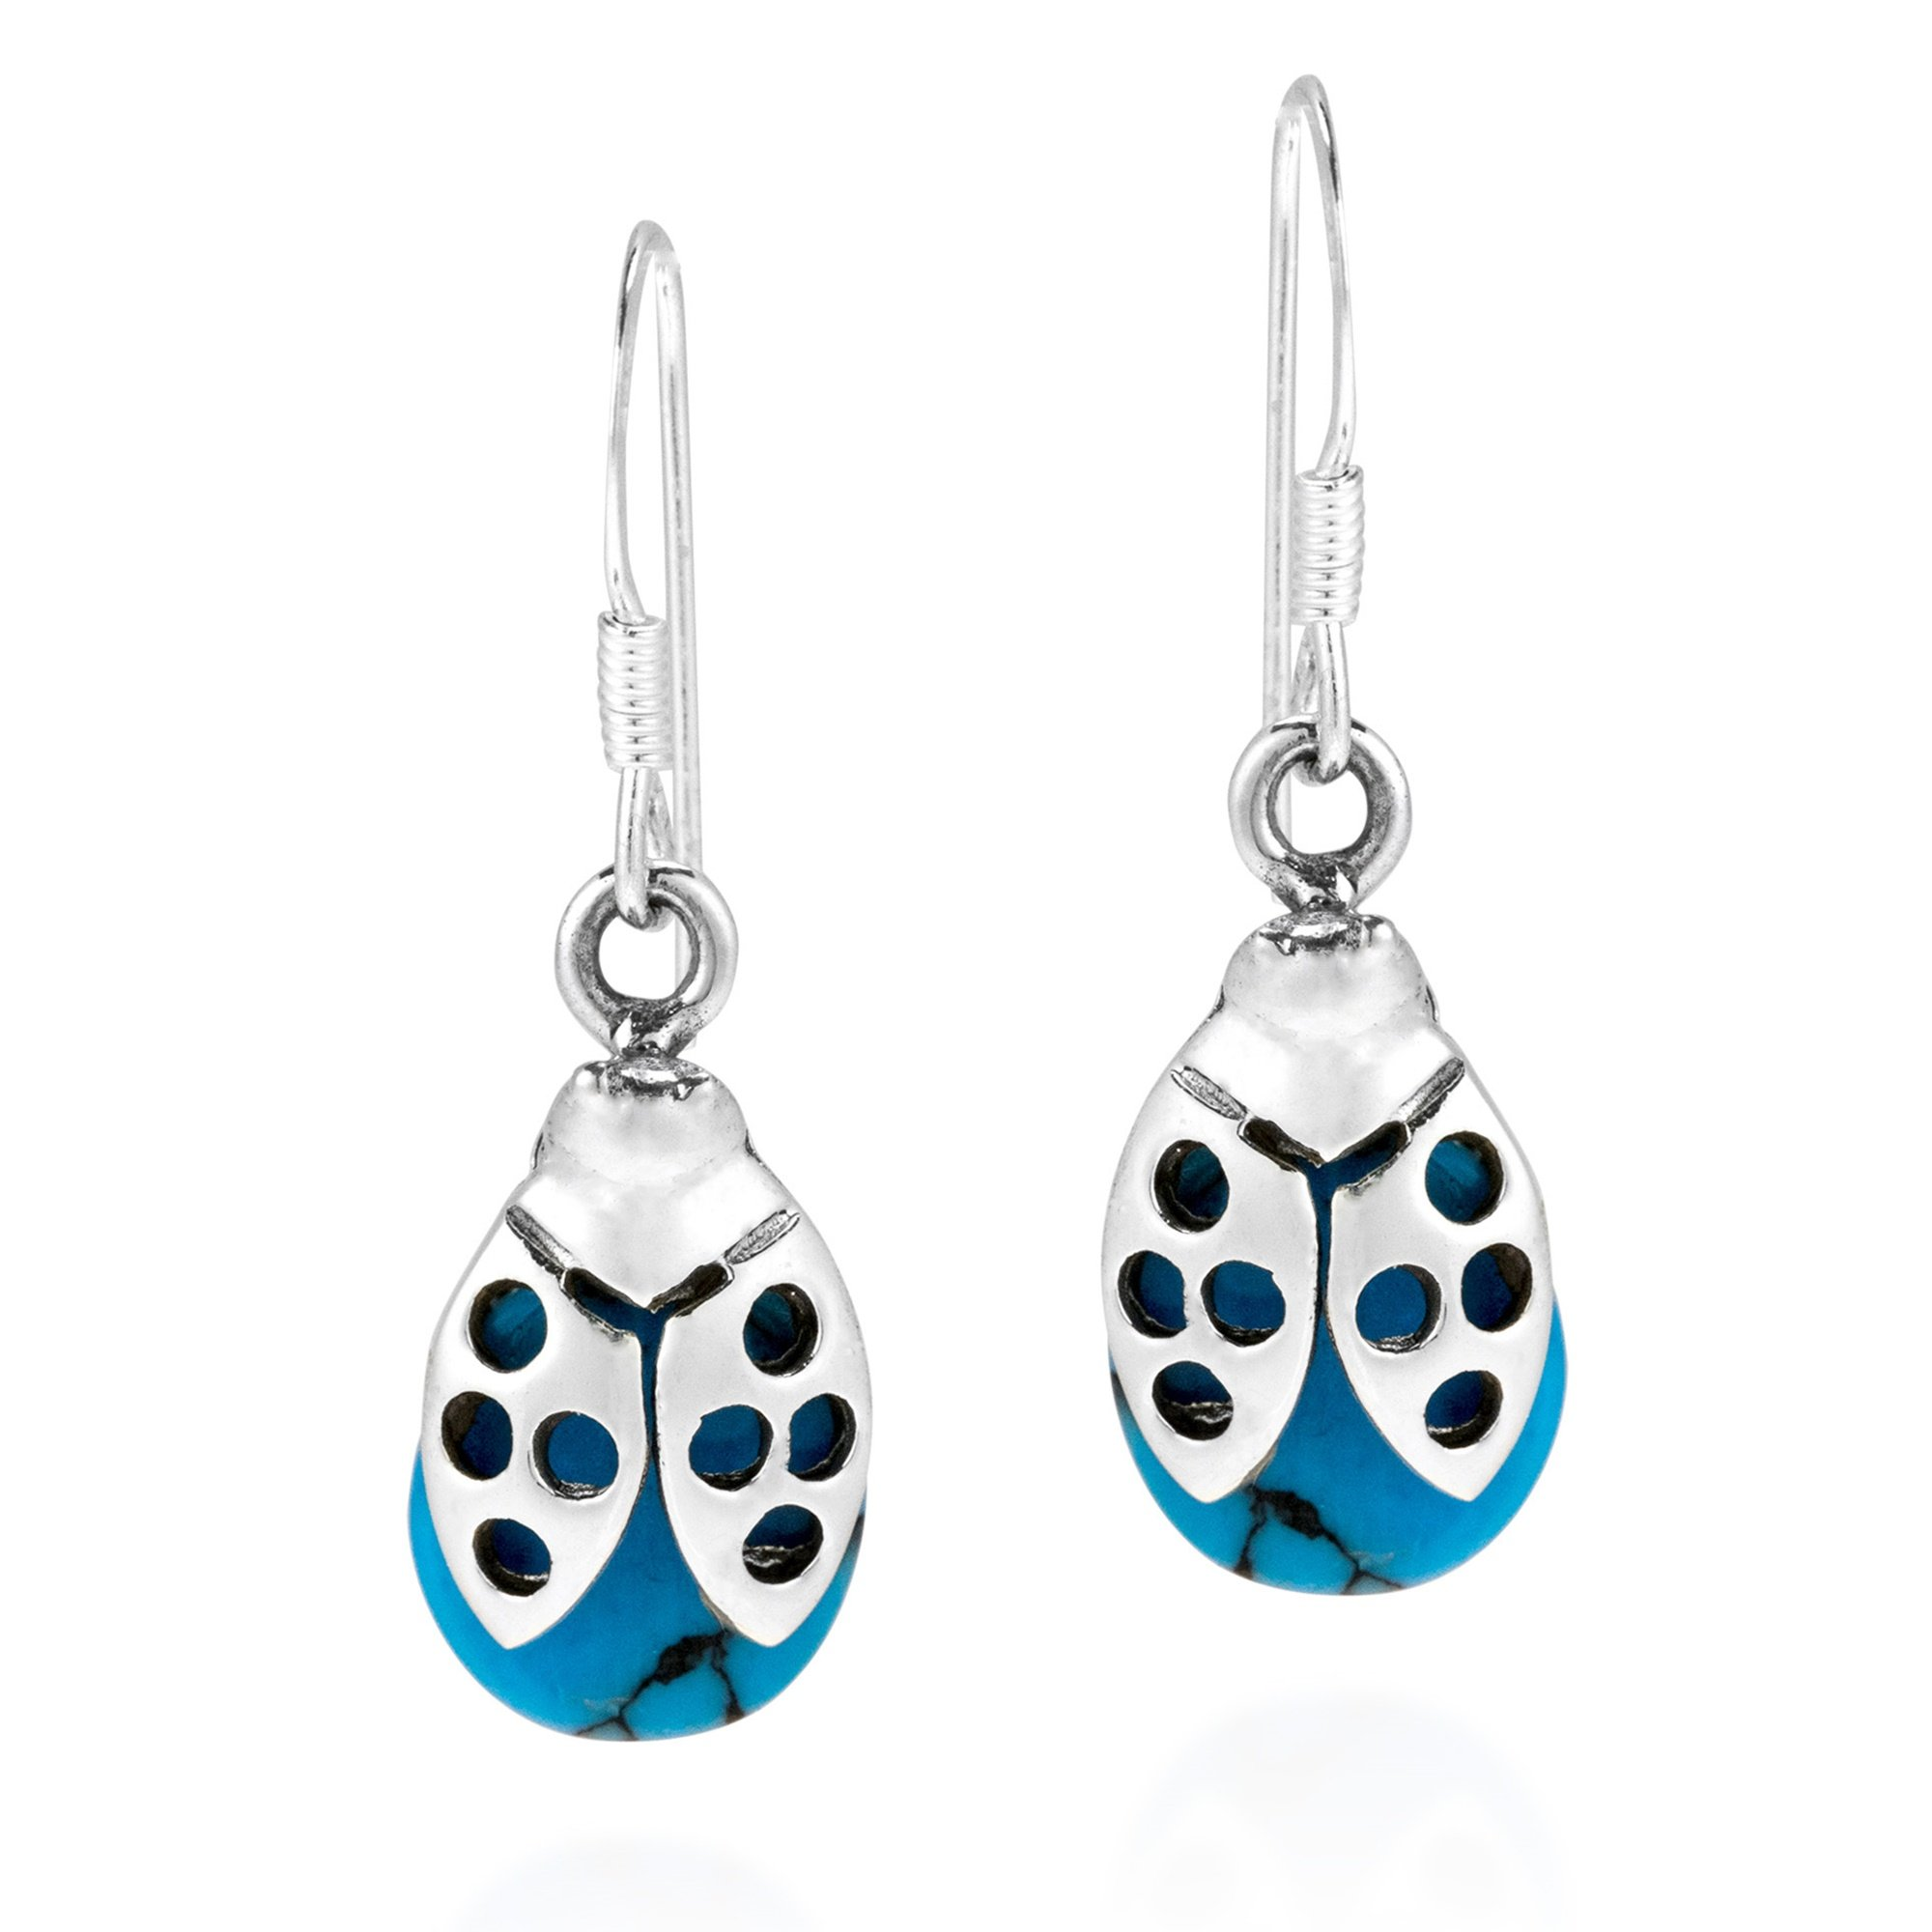 Summer Love Ladybug Simulated Turquoise Stone .925 Sterling Silver Earrings